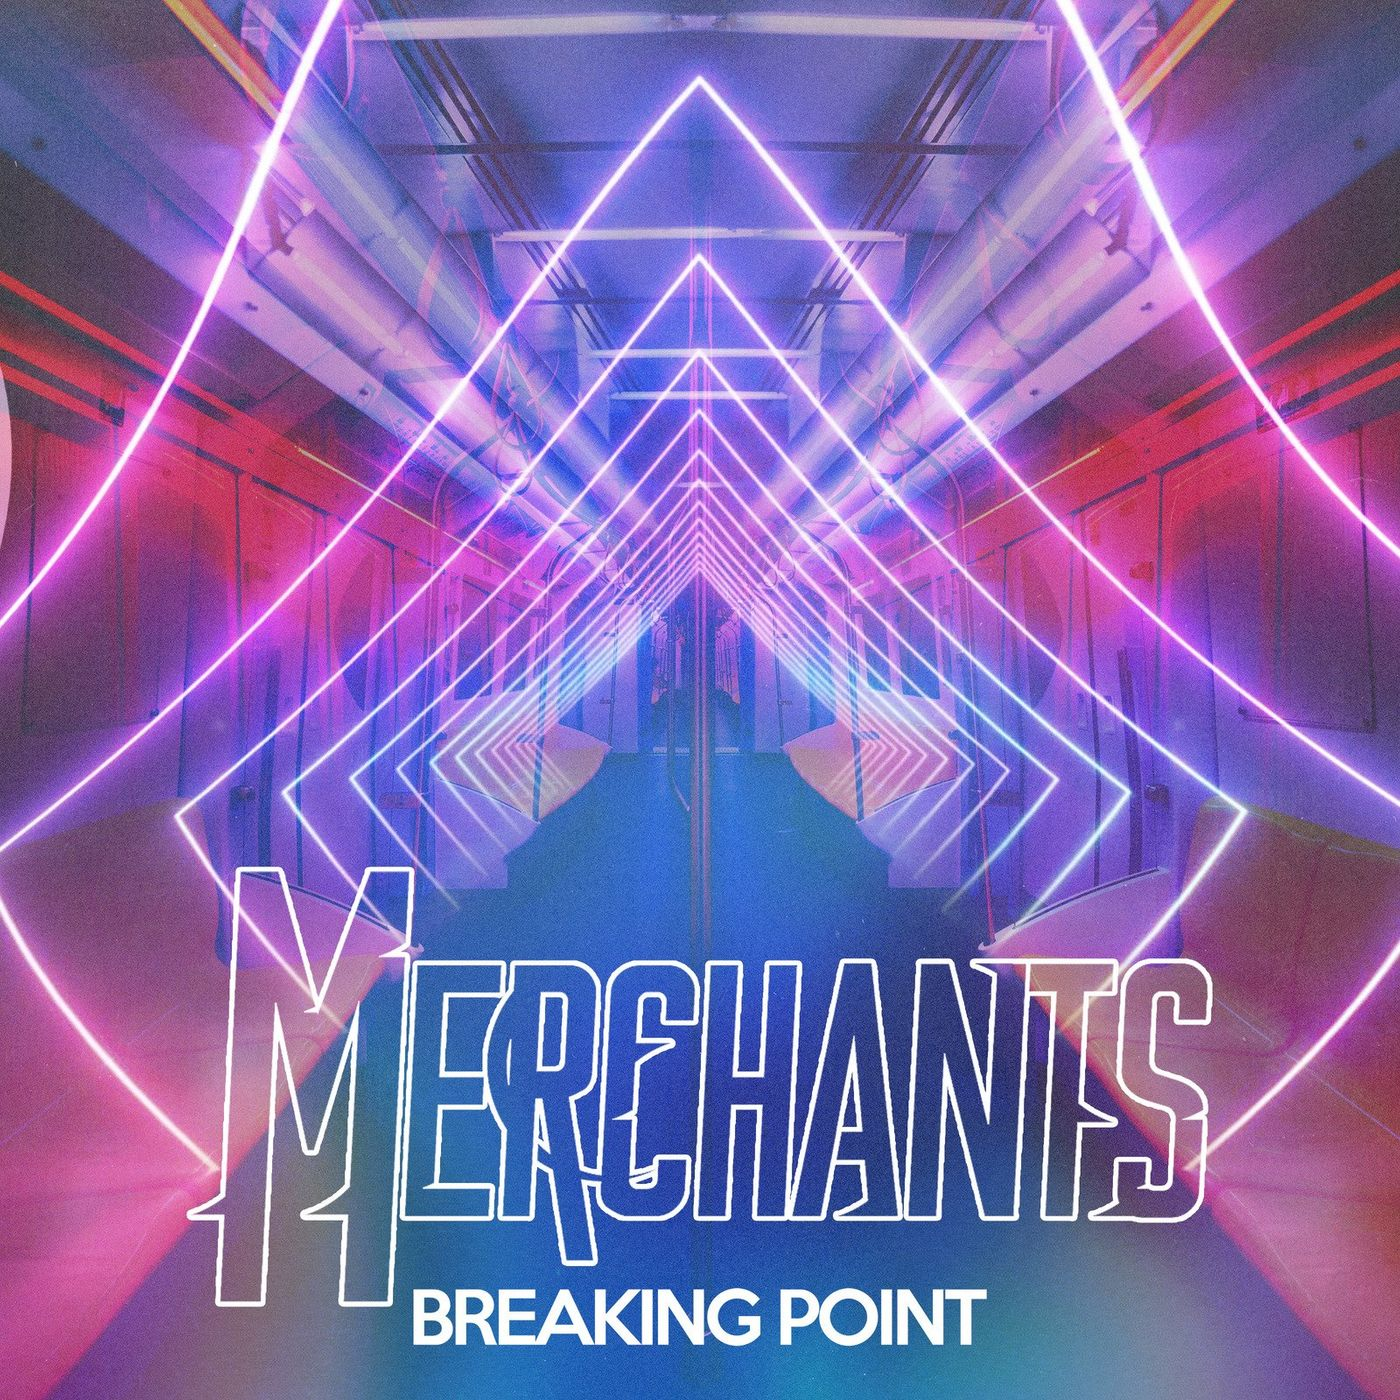 Merchants - Breaking Point [single] (2020)